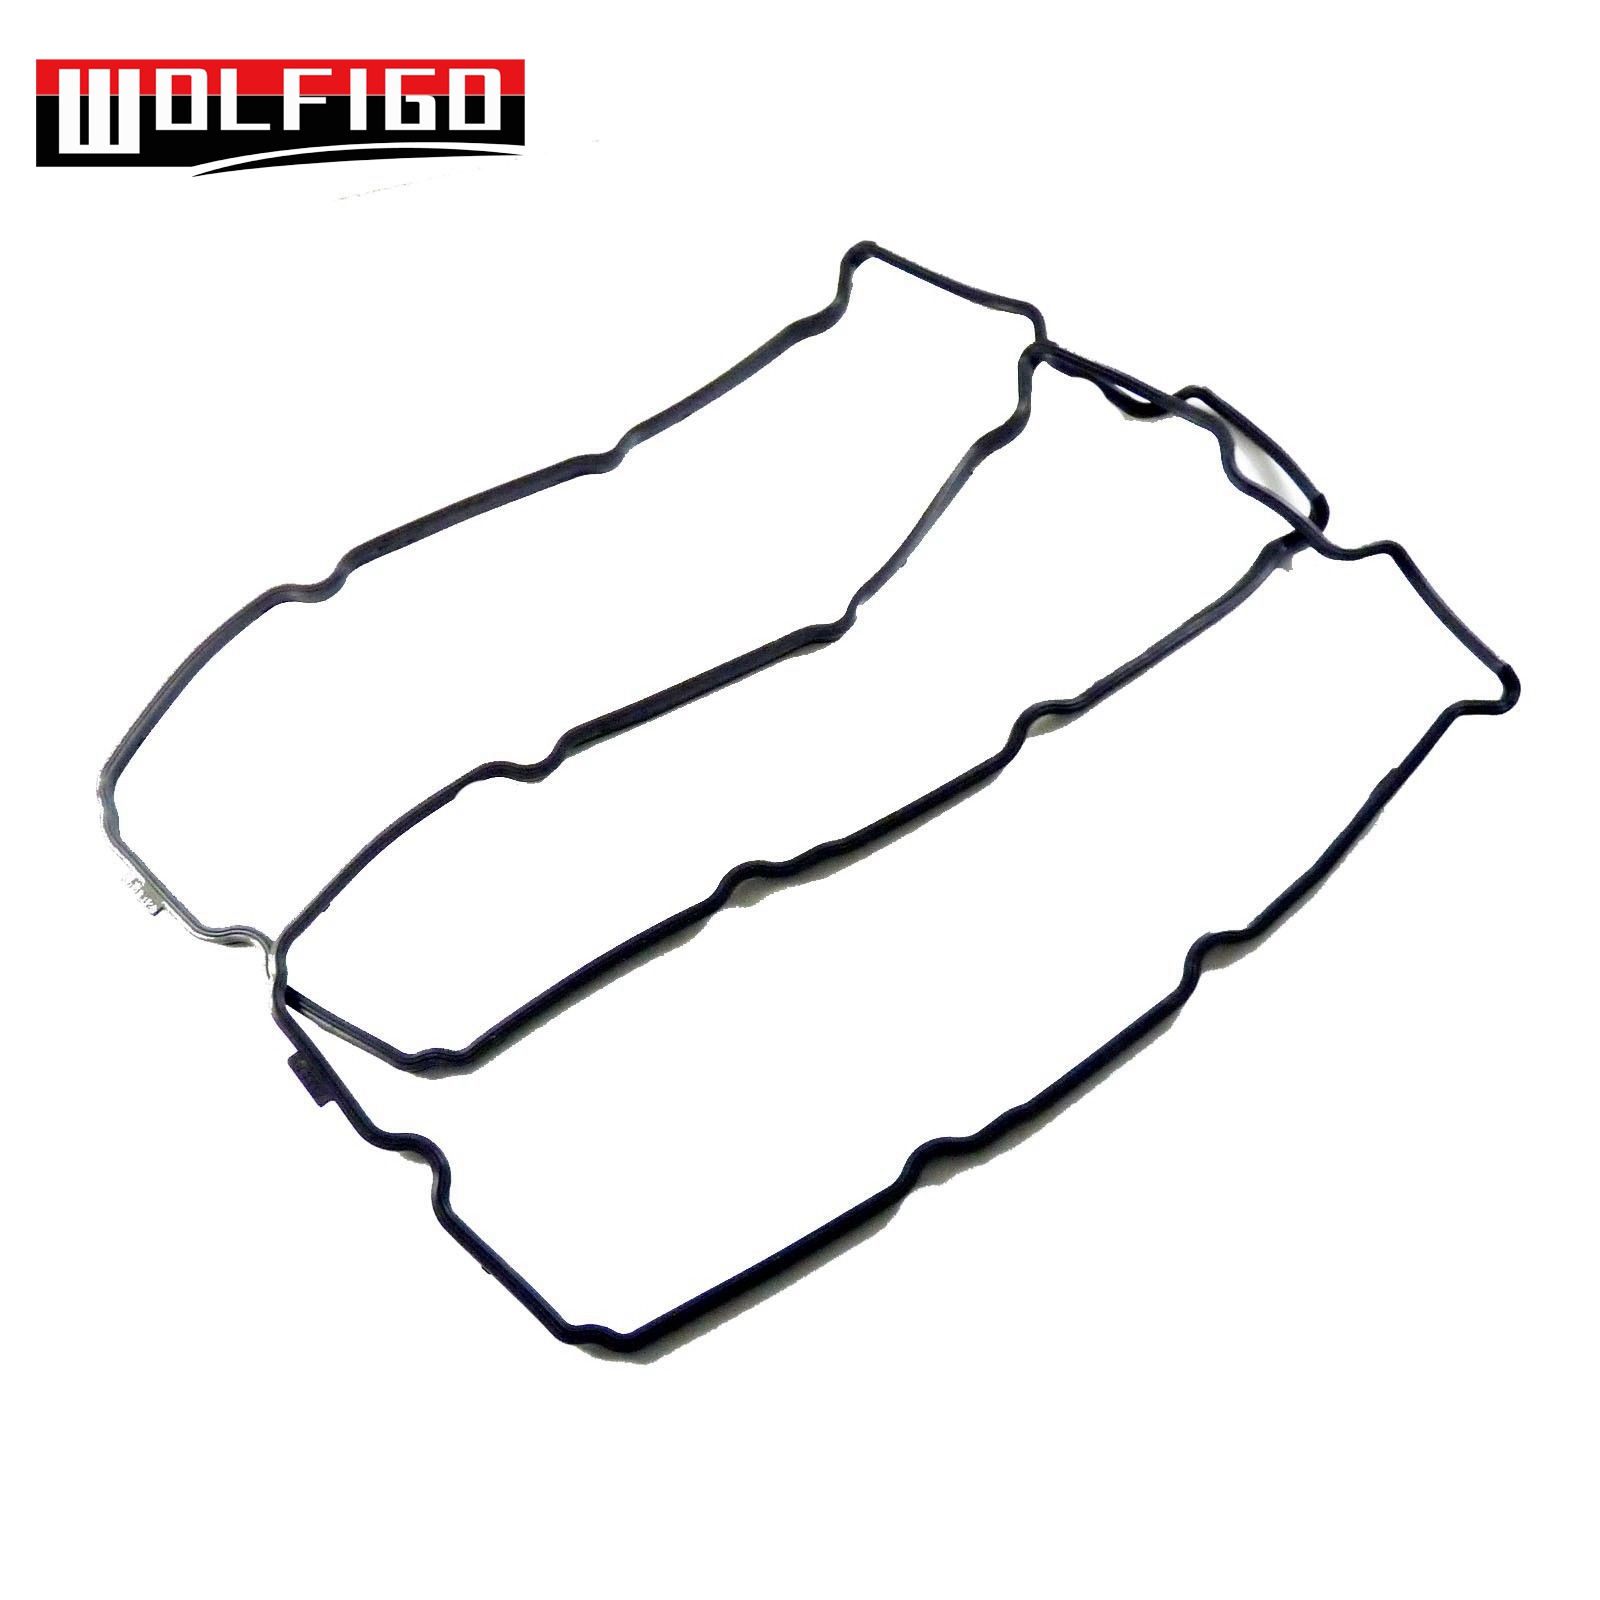 WOLFIGO New Engine Valve Cover Gasket Set For 02 14 NISSAN 350Z ALTIMA  FRONTIER VS50608R,13270 8J102, 13270 8J112-in Cyl. Head & Valve Cover  Gasket from ...